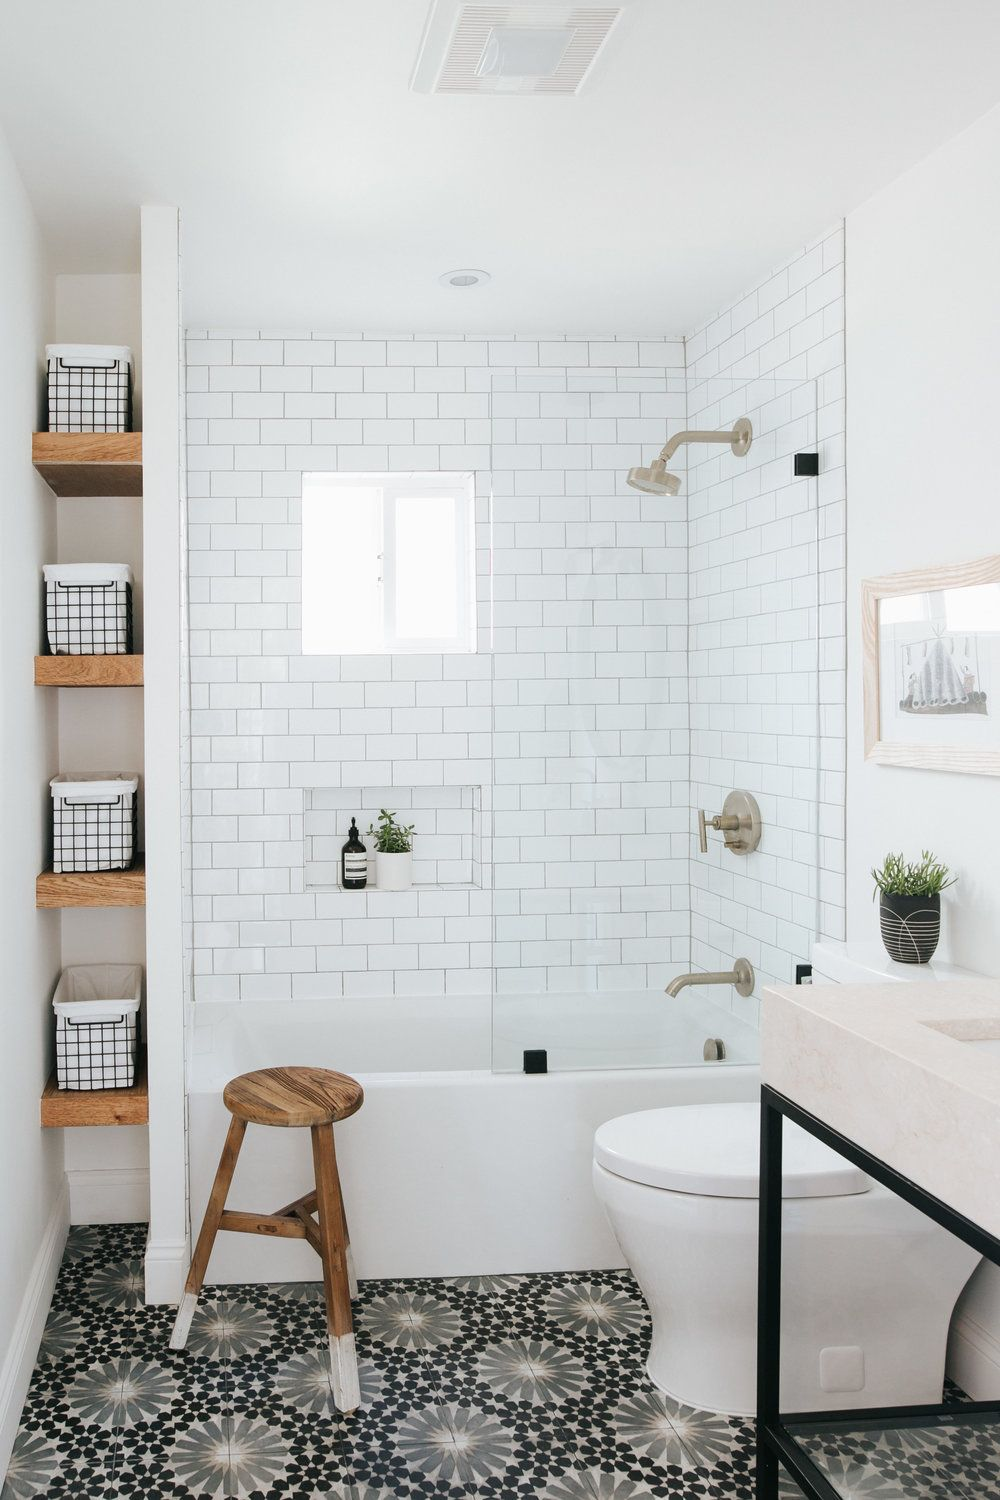 Don't Let Anyone Tell You That a Small Bathtub Won't Make a Big Statement | Hunker